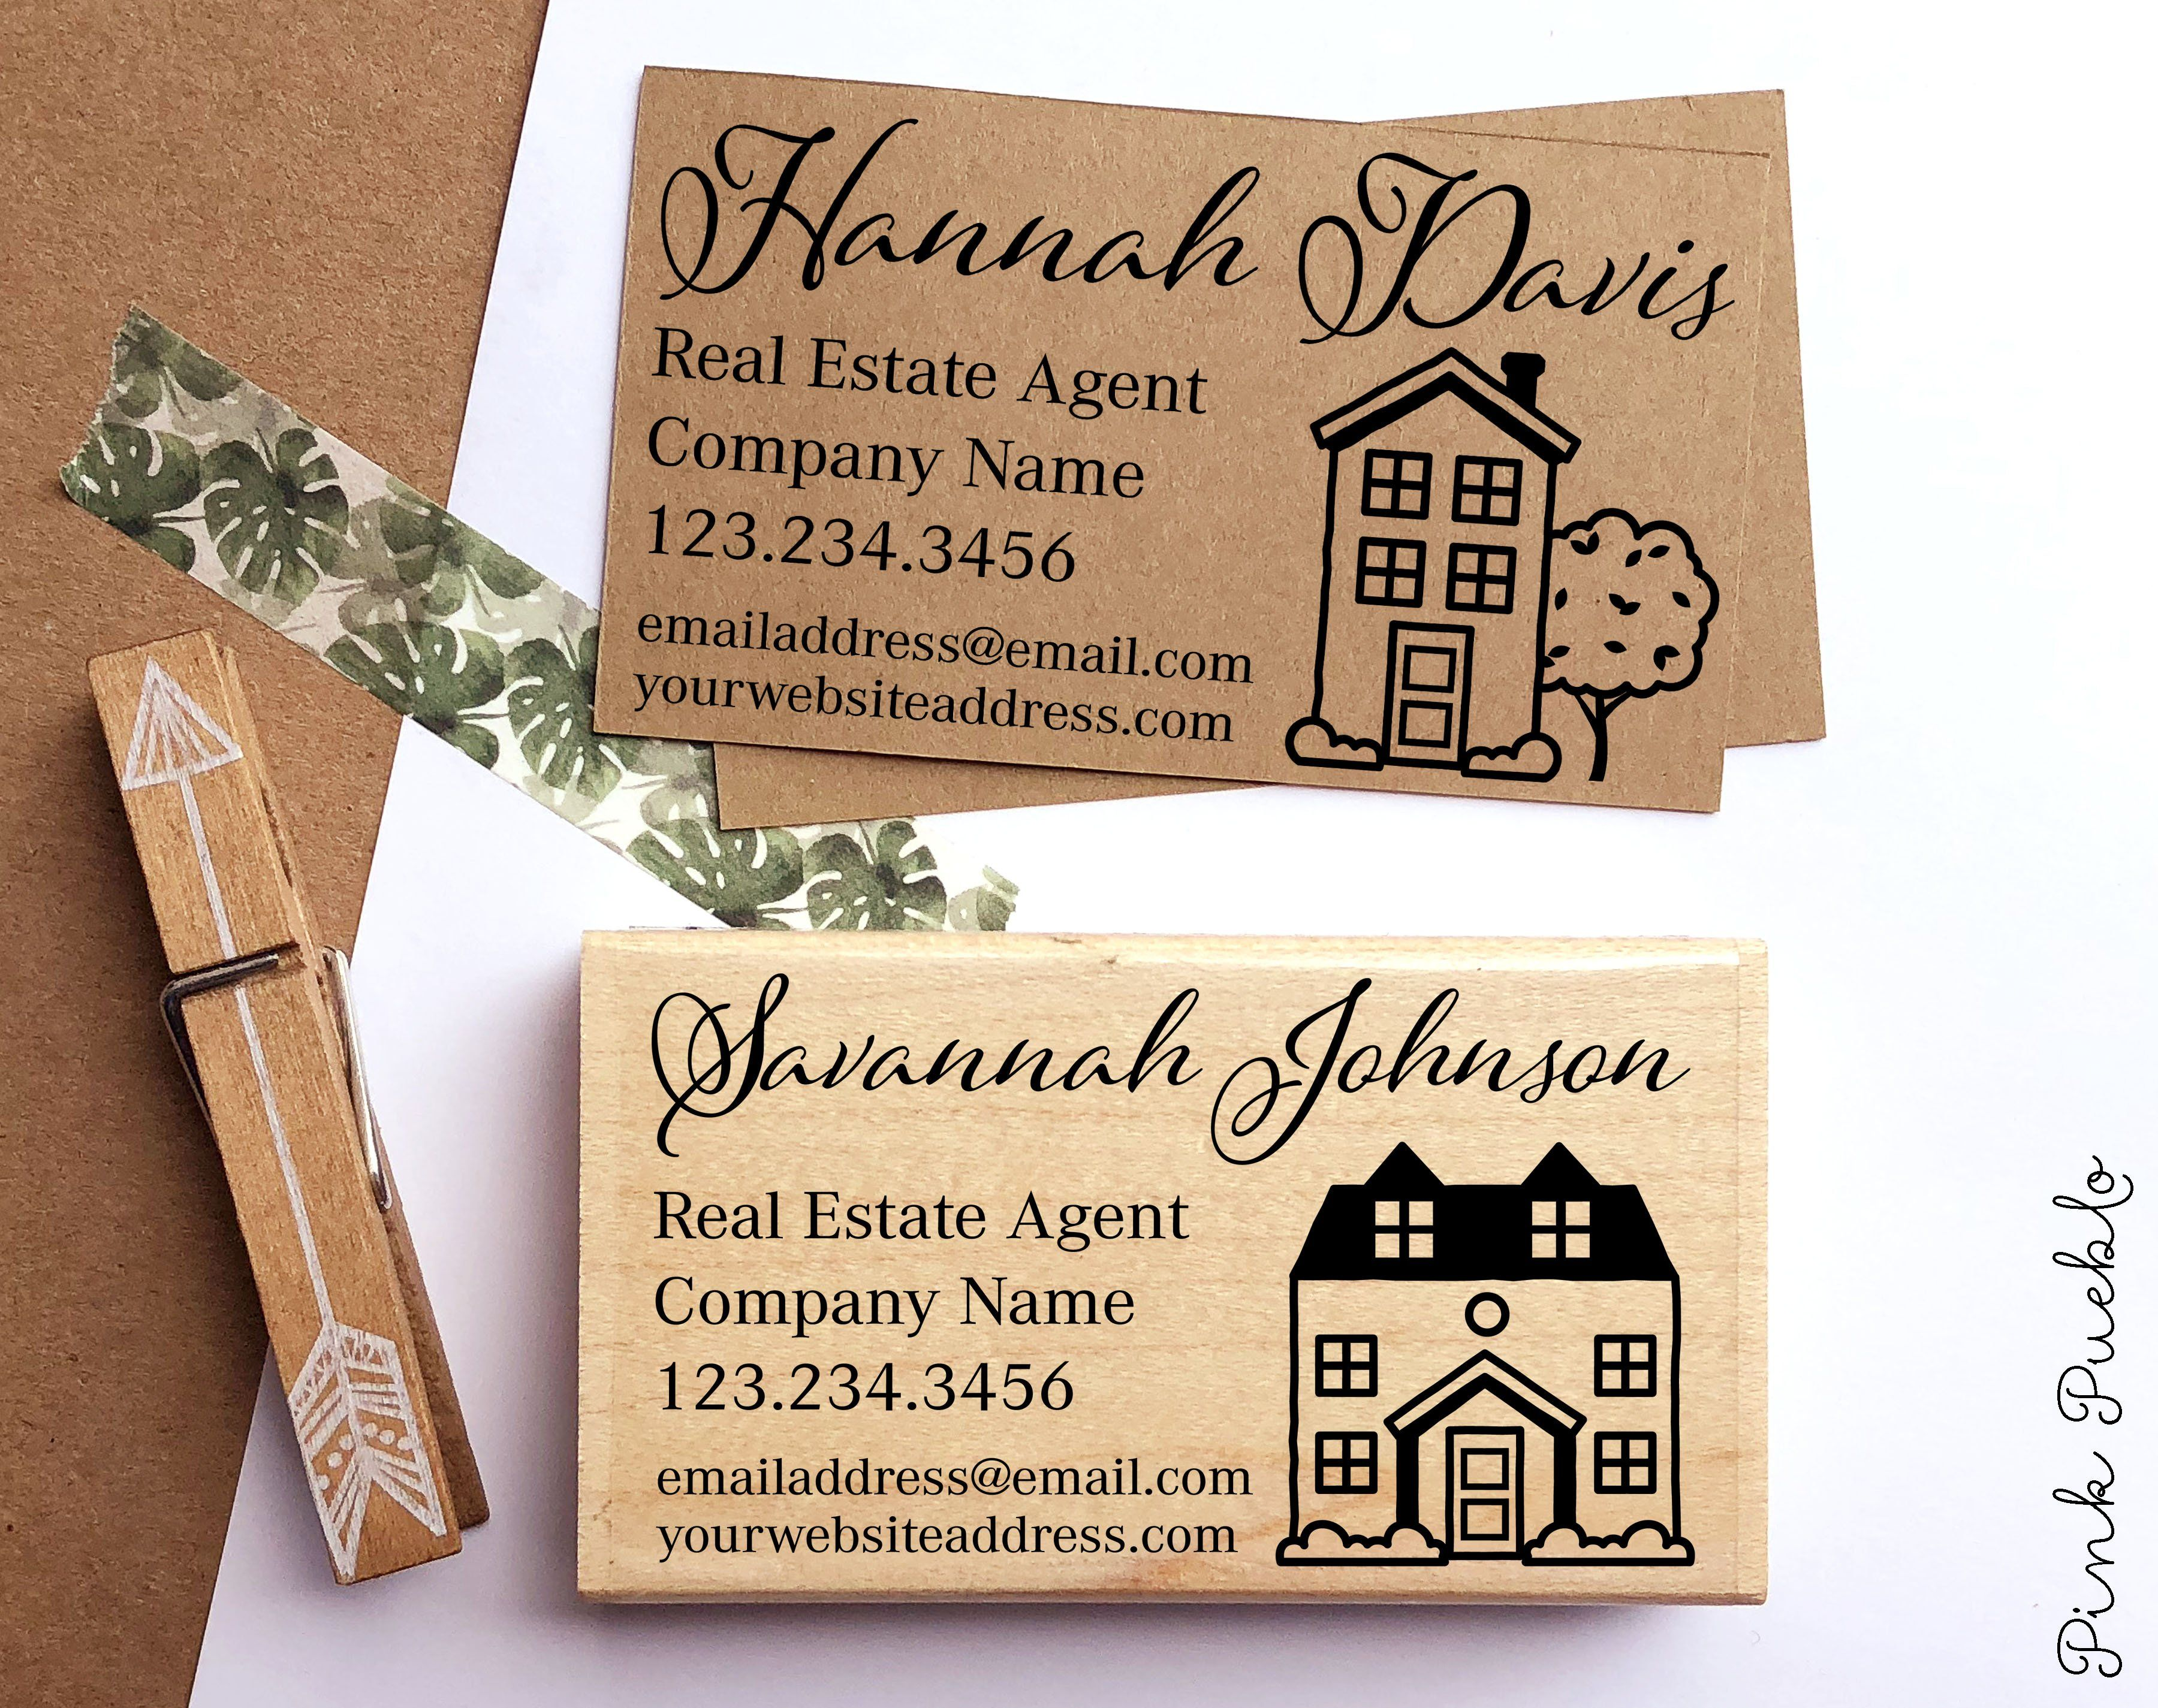 Personalized Real Estate Business Card Stamp Real Estate Agent Business Card Stamp Pinkpueblo Real Estate Business Cards Real Estate Agent Business Cards Real Estate Business